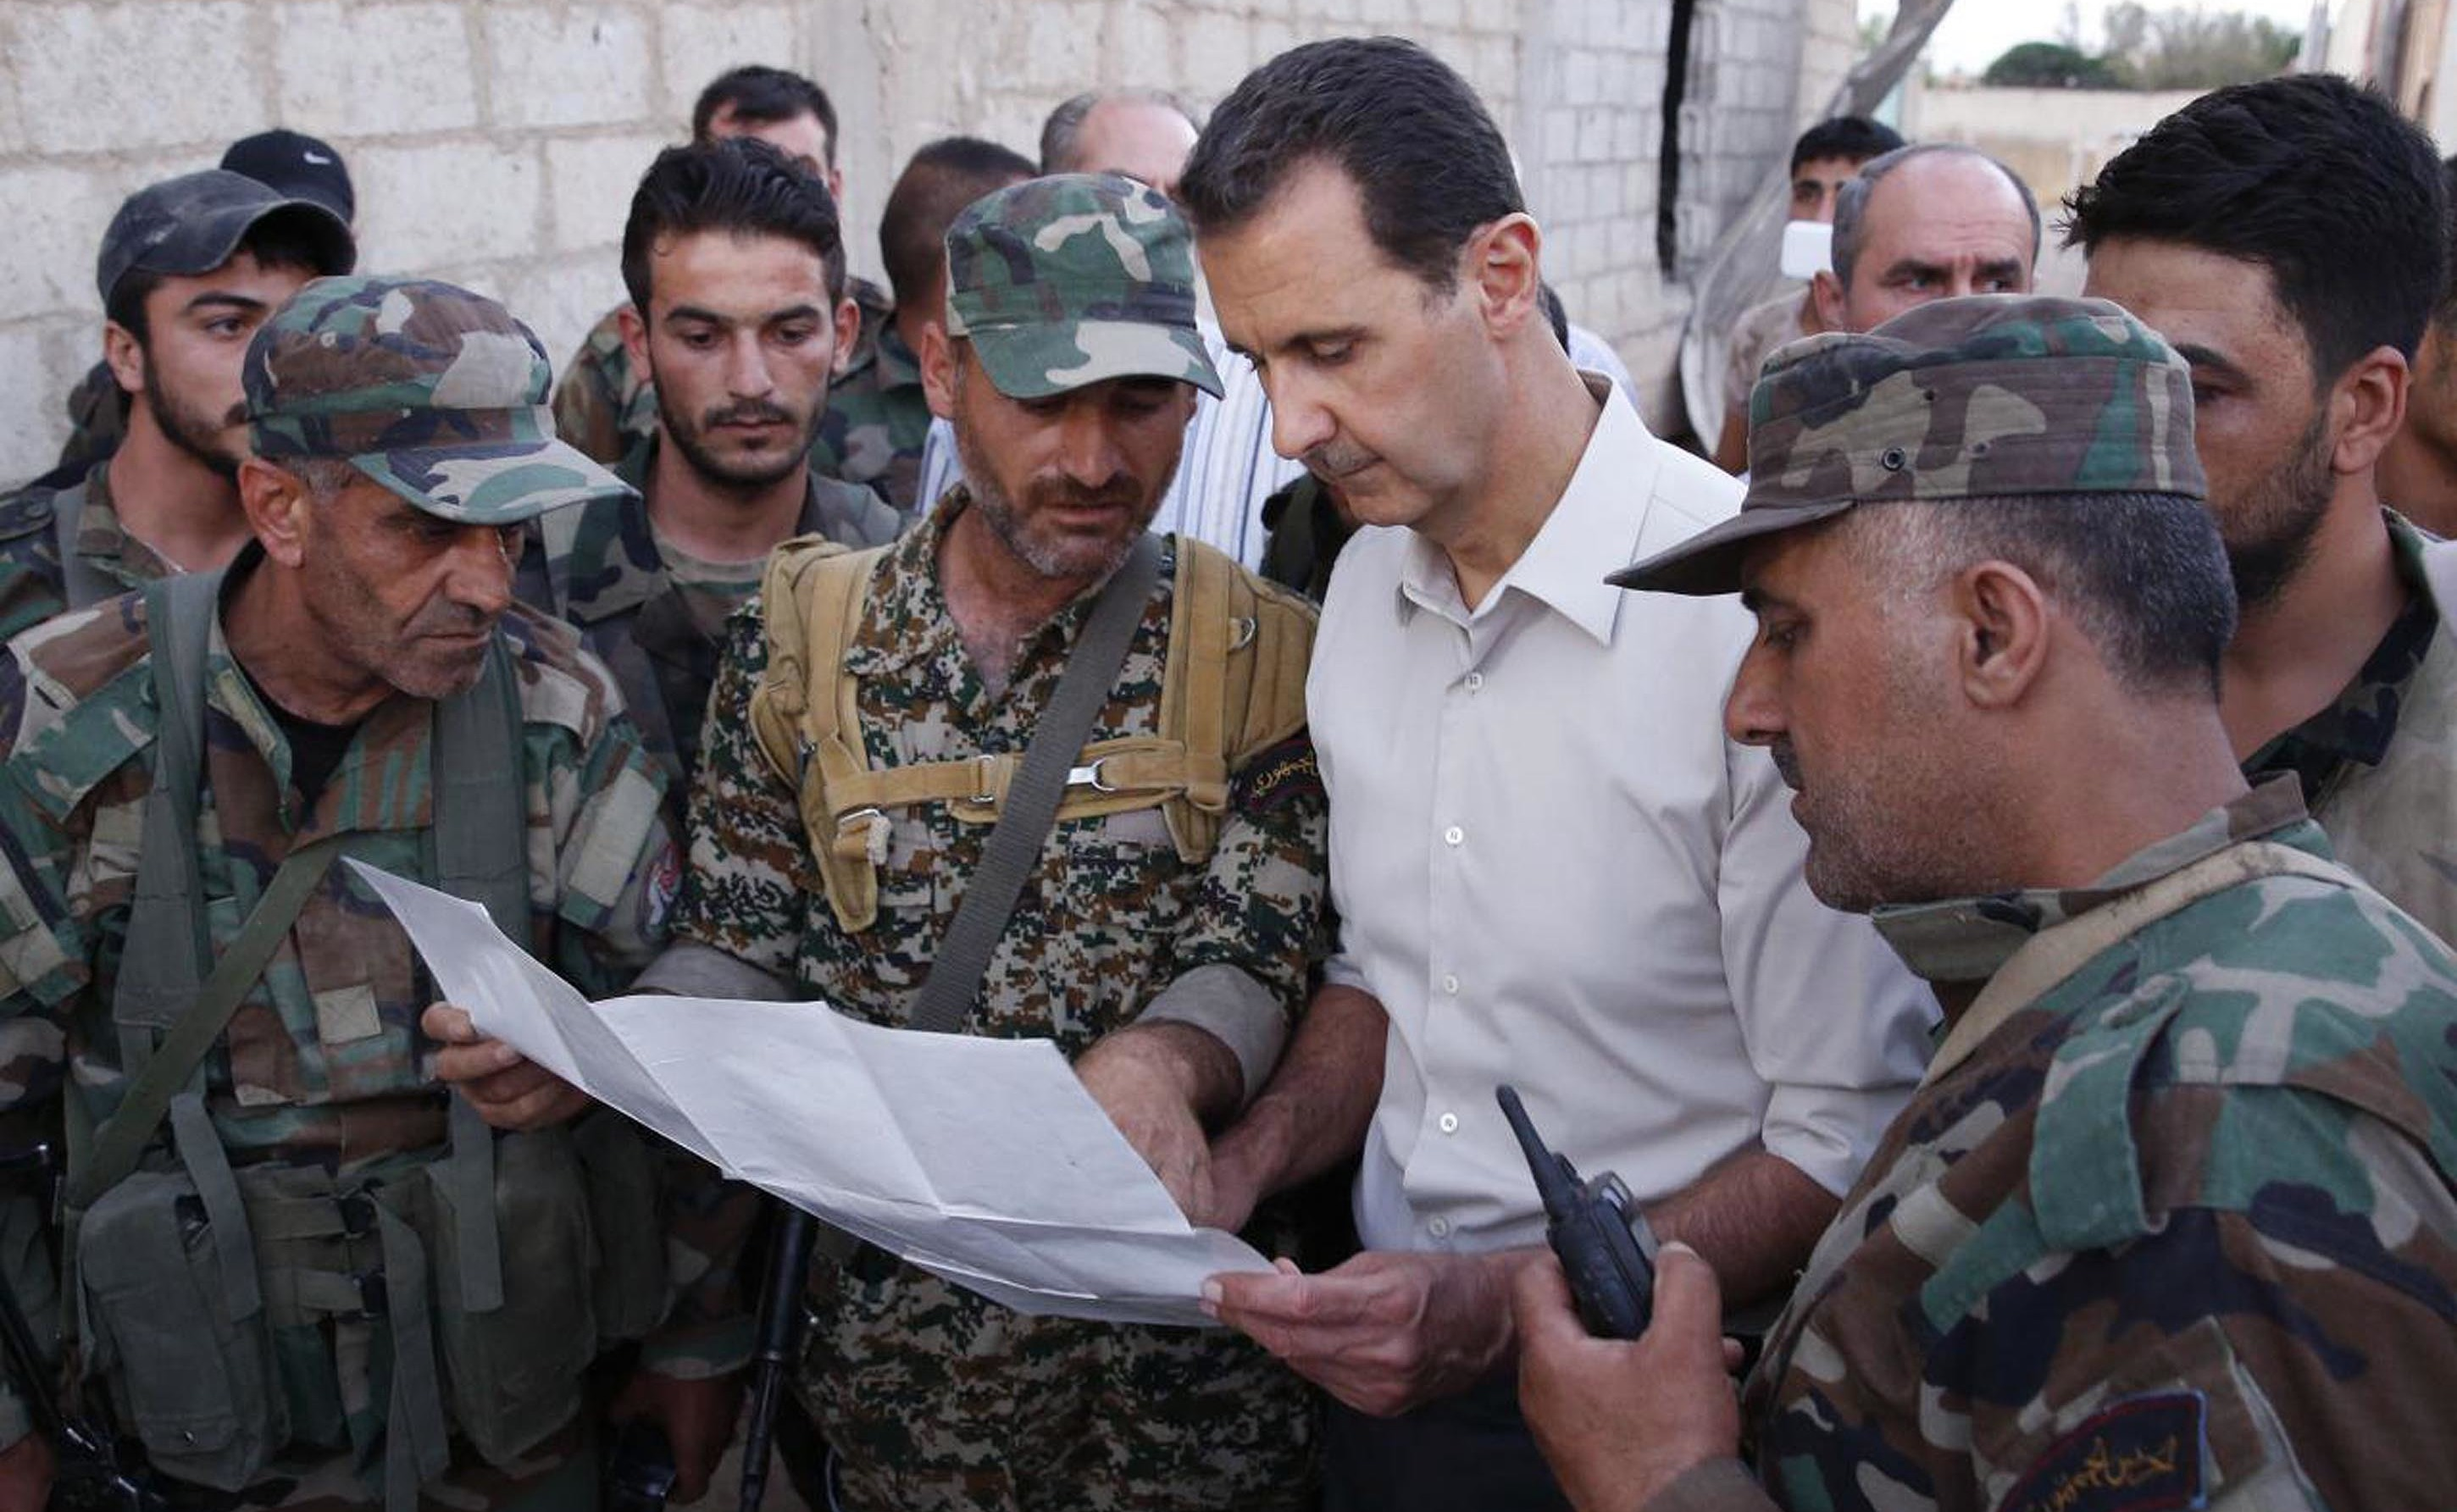 Syrian President Bashar Al-Assad: I would warn United States of ISIS attack